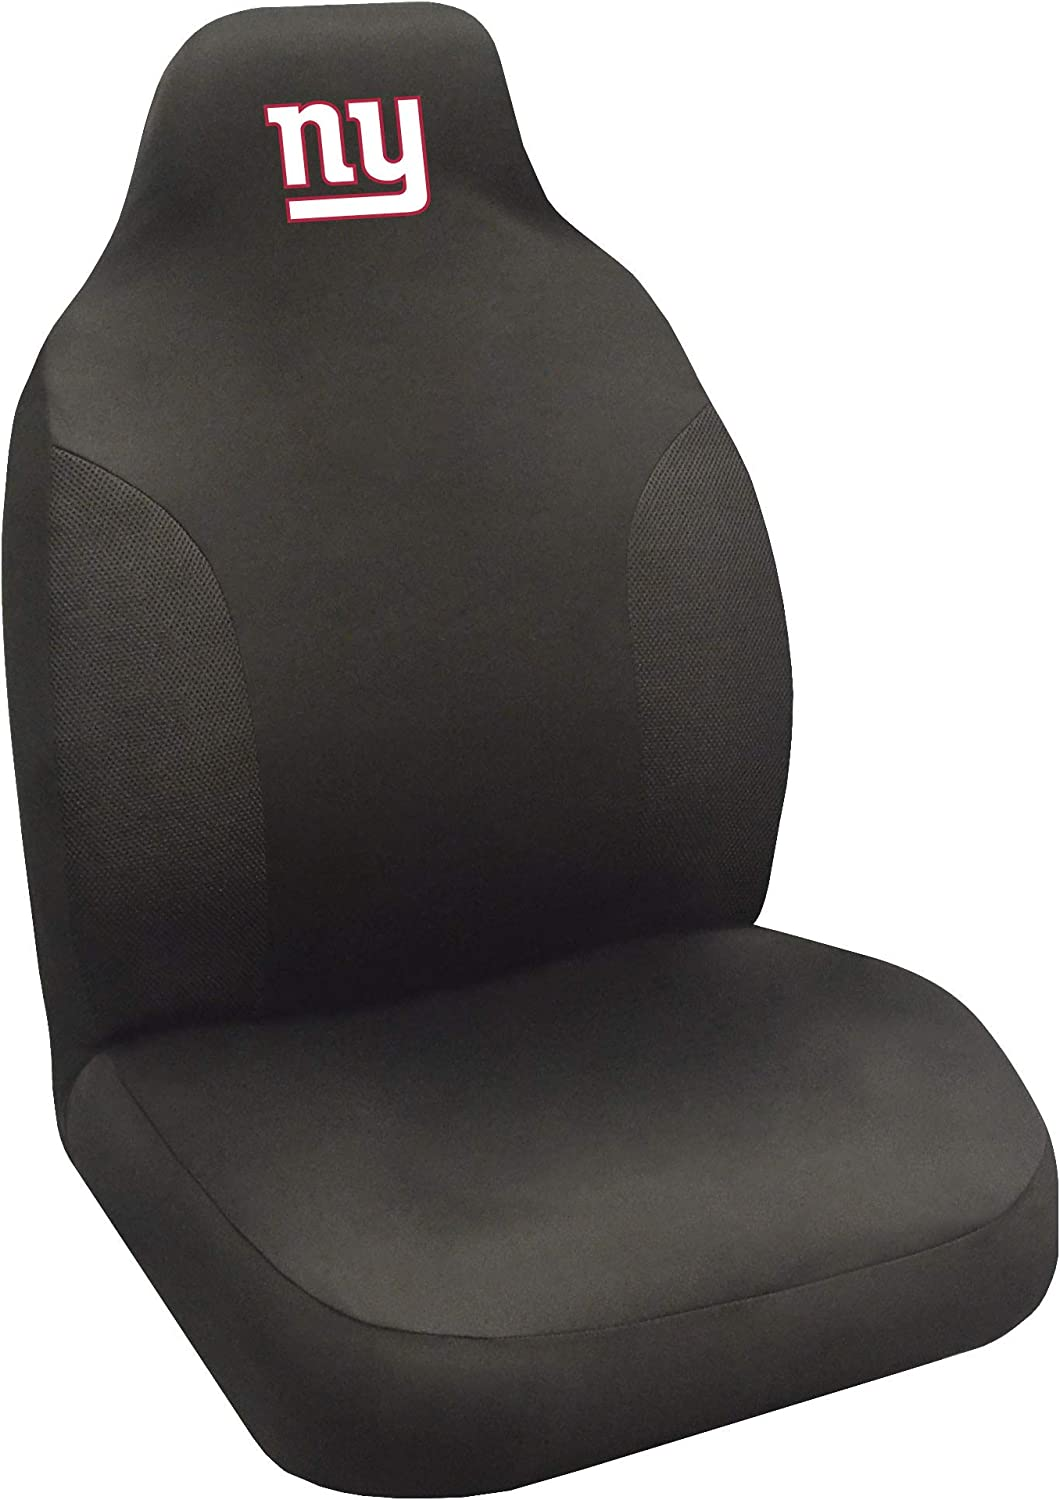 New York Giants FANMATS 21566 Seat Cover NFL